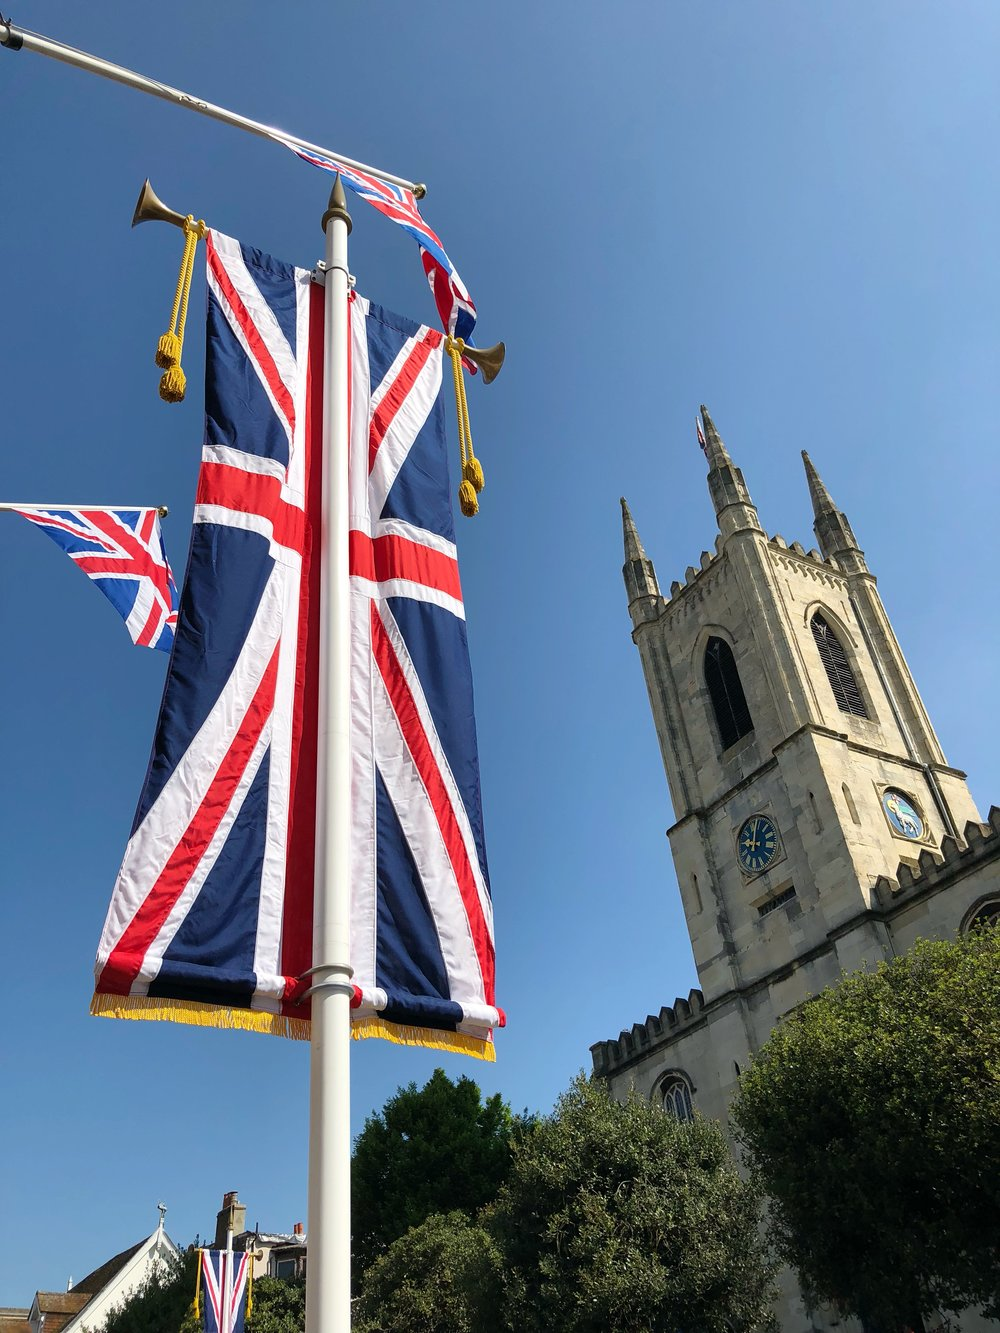 Windsor, Berkshire, England, UK, Royal Wedding